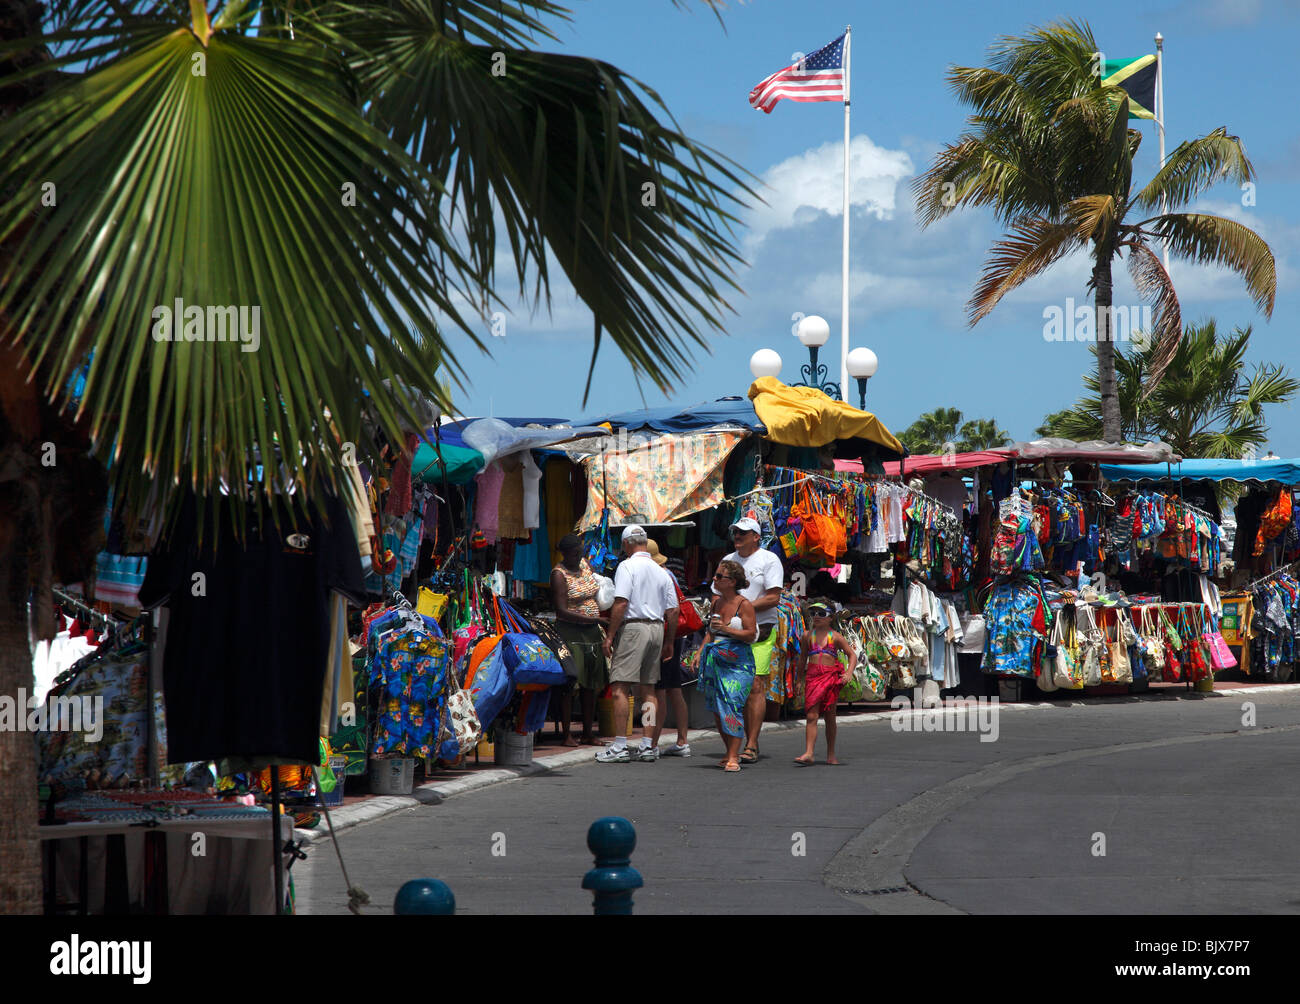 Colourful Market stalls in St.Martin, French Caribbean - Stock Image